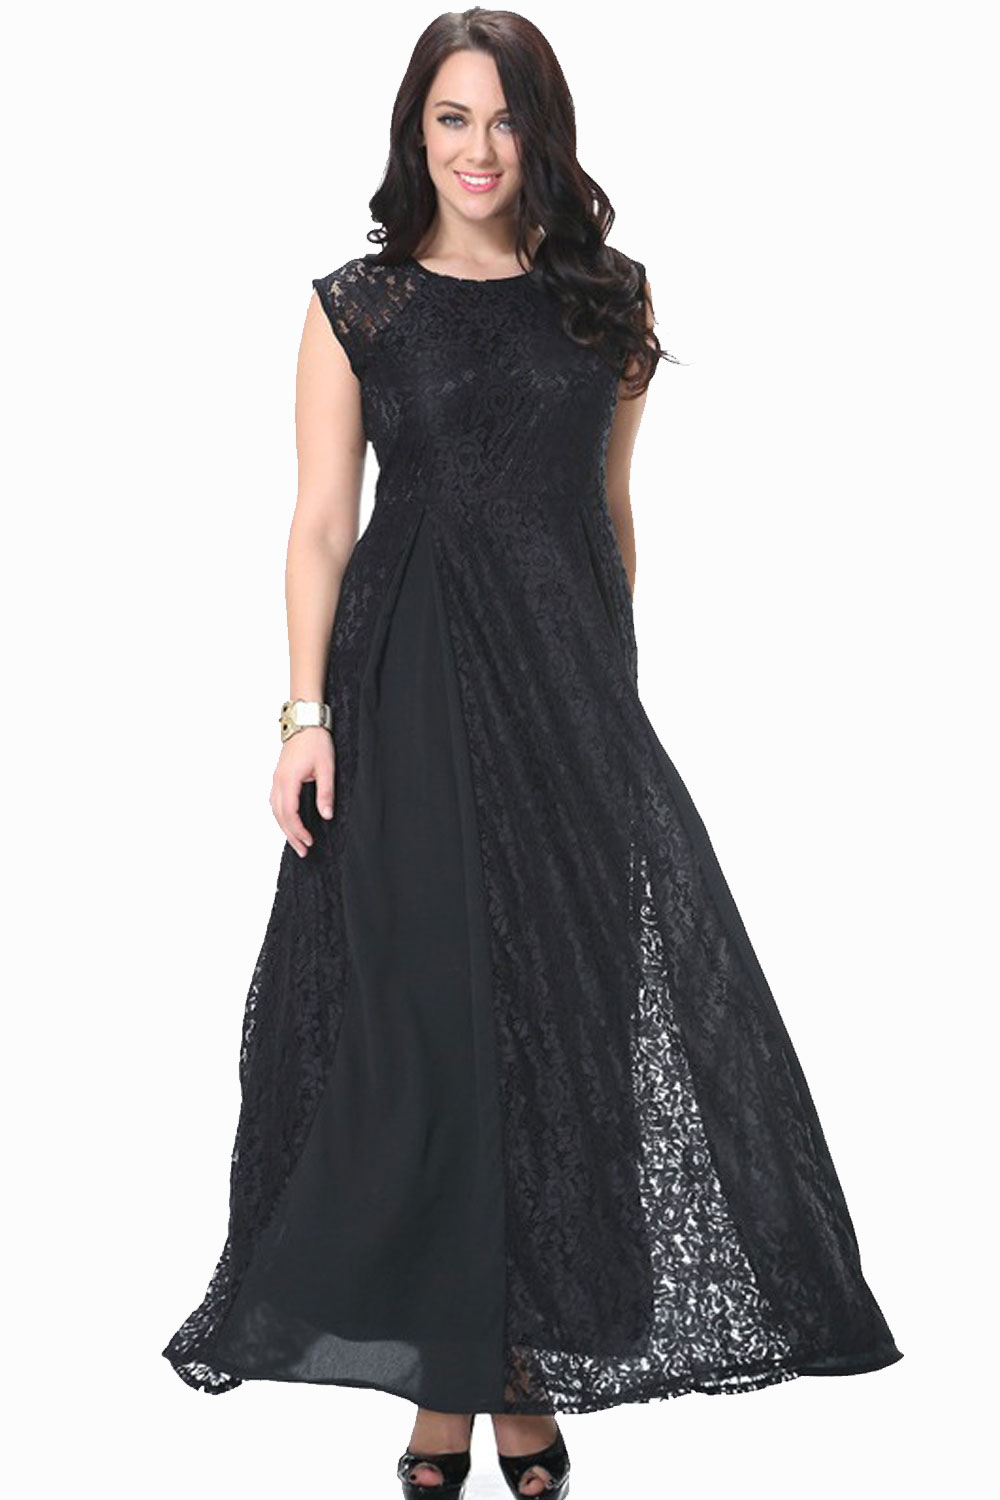 316c609b699 UNOMATCH WOMEN ROUND NECK SLEEVELESS PLUS SIZE LACE DRESS BLACK ...